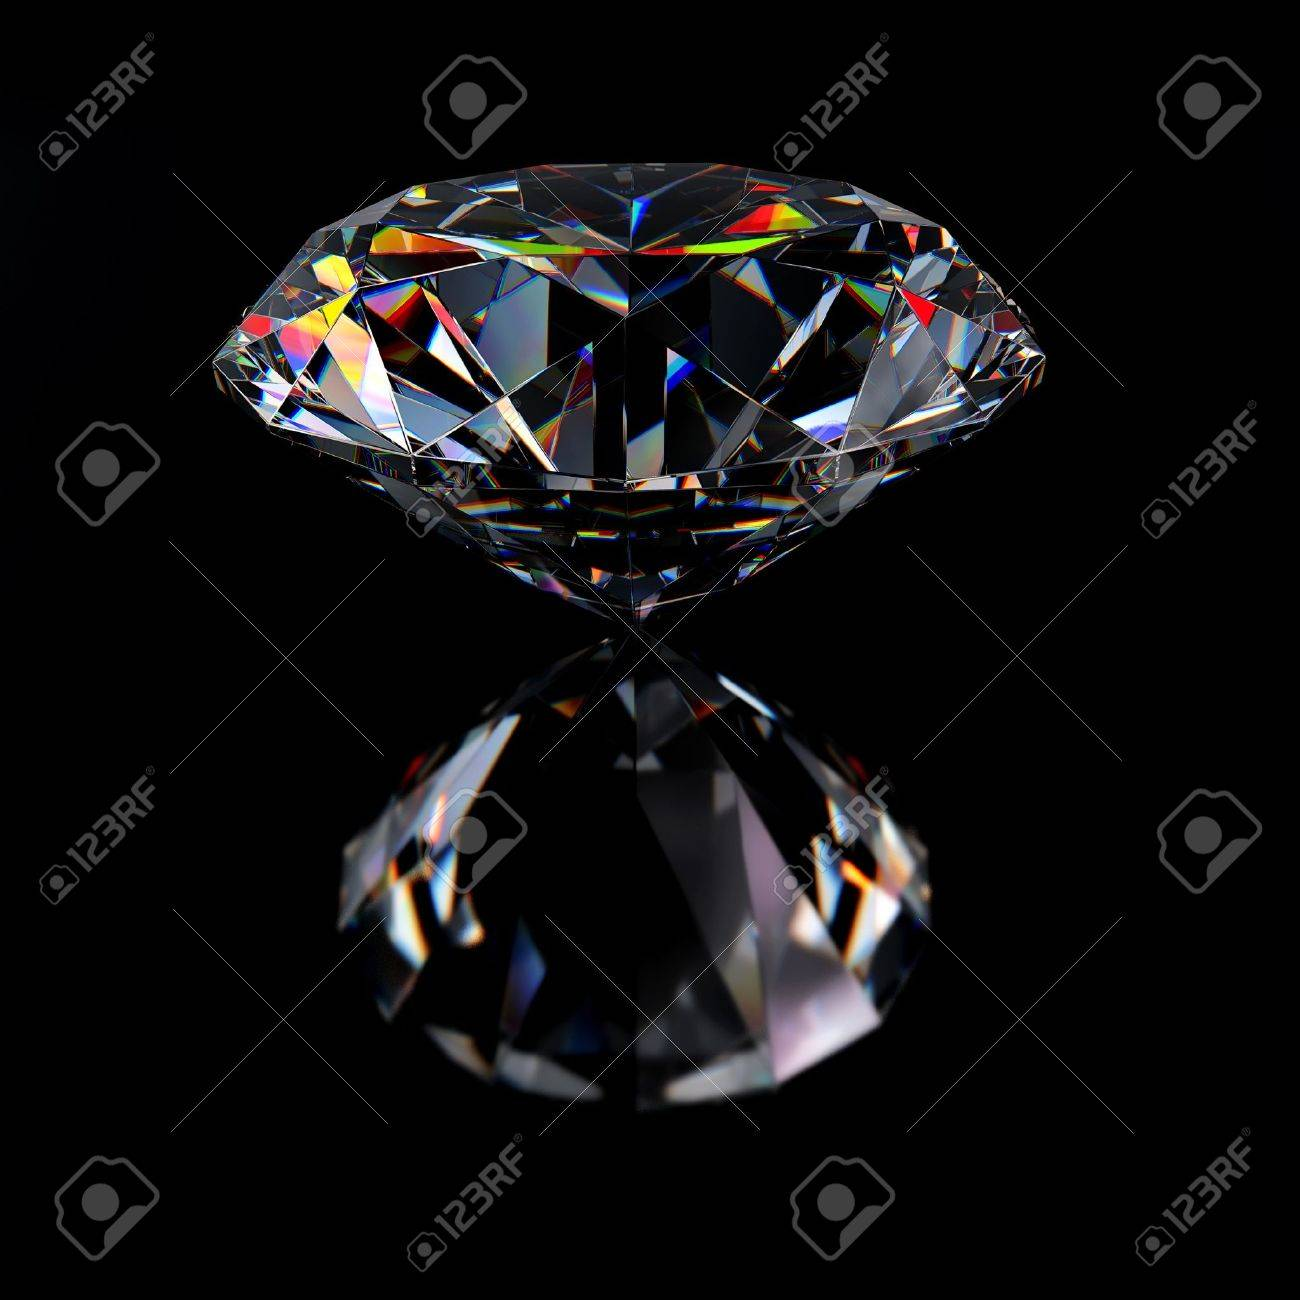 Diamond jewel with reflections on black background Stock Photo - 8000691